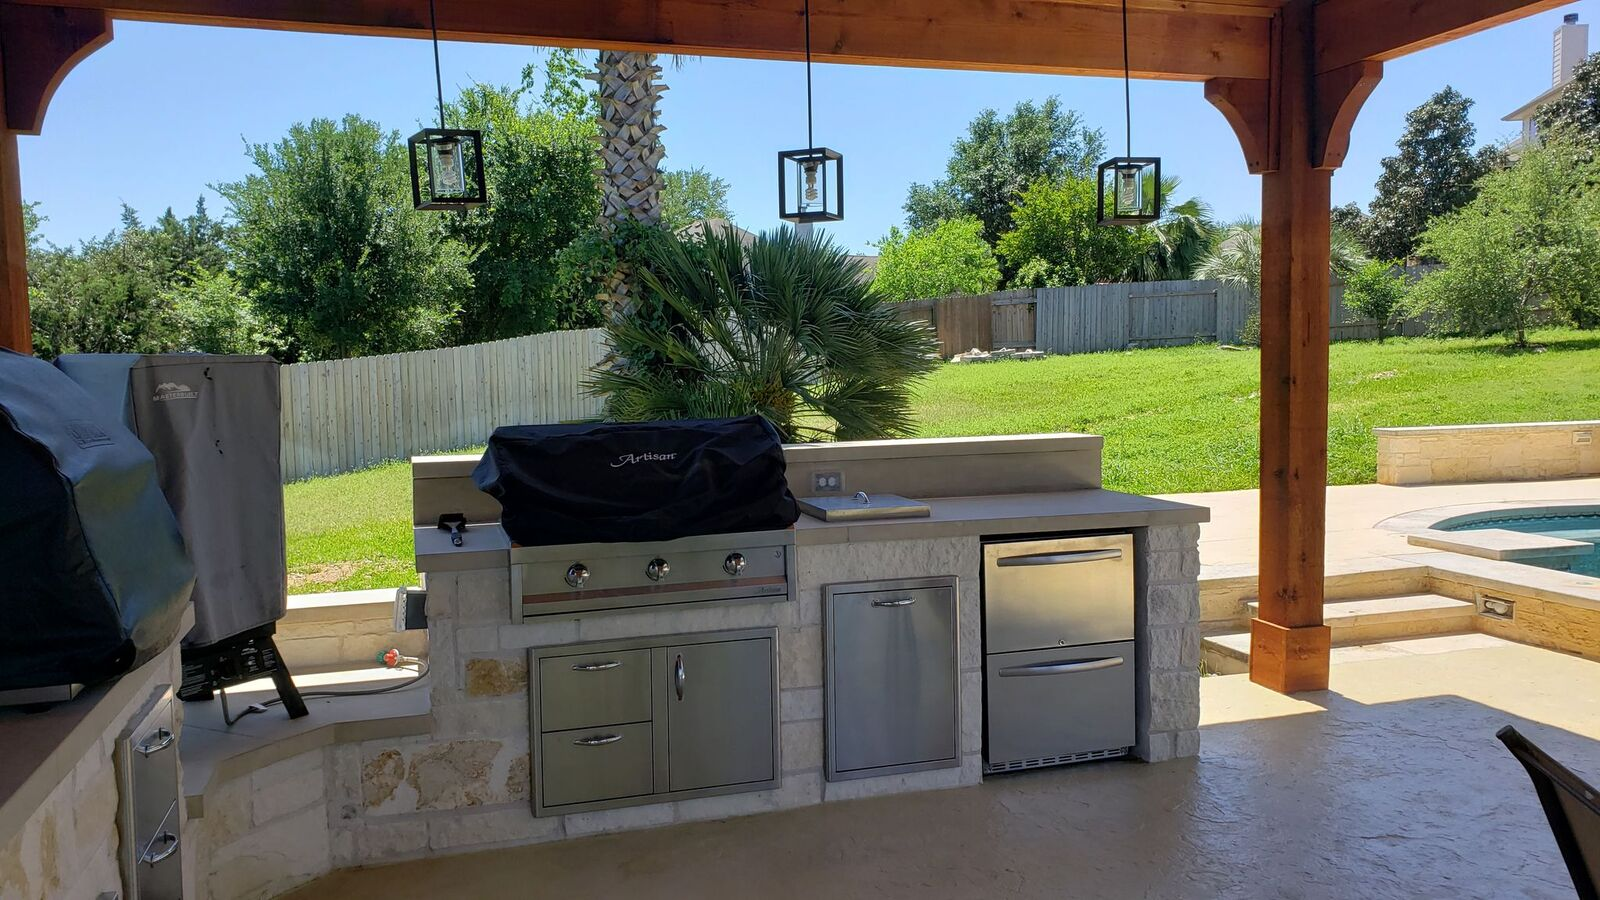 Look-at-this-amazing-outdoor-kitchen